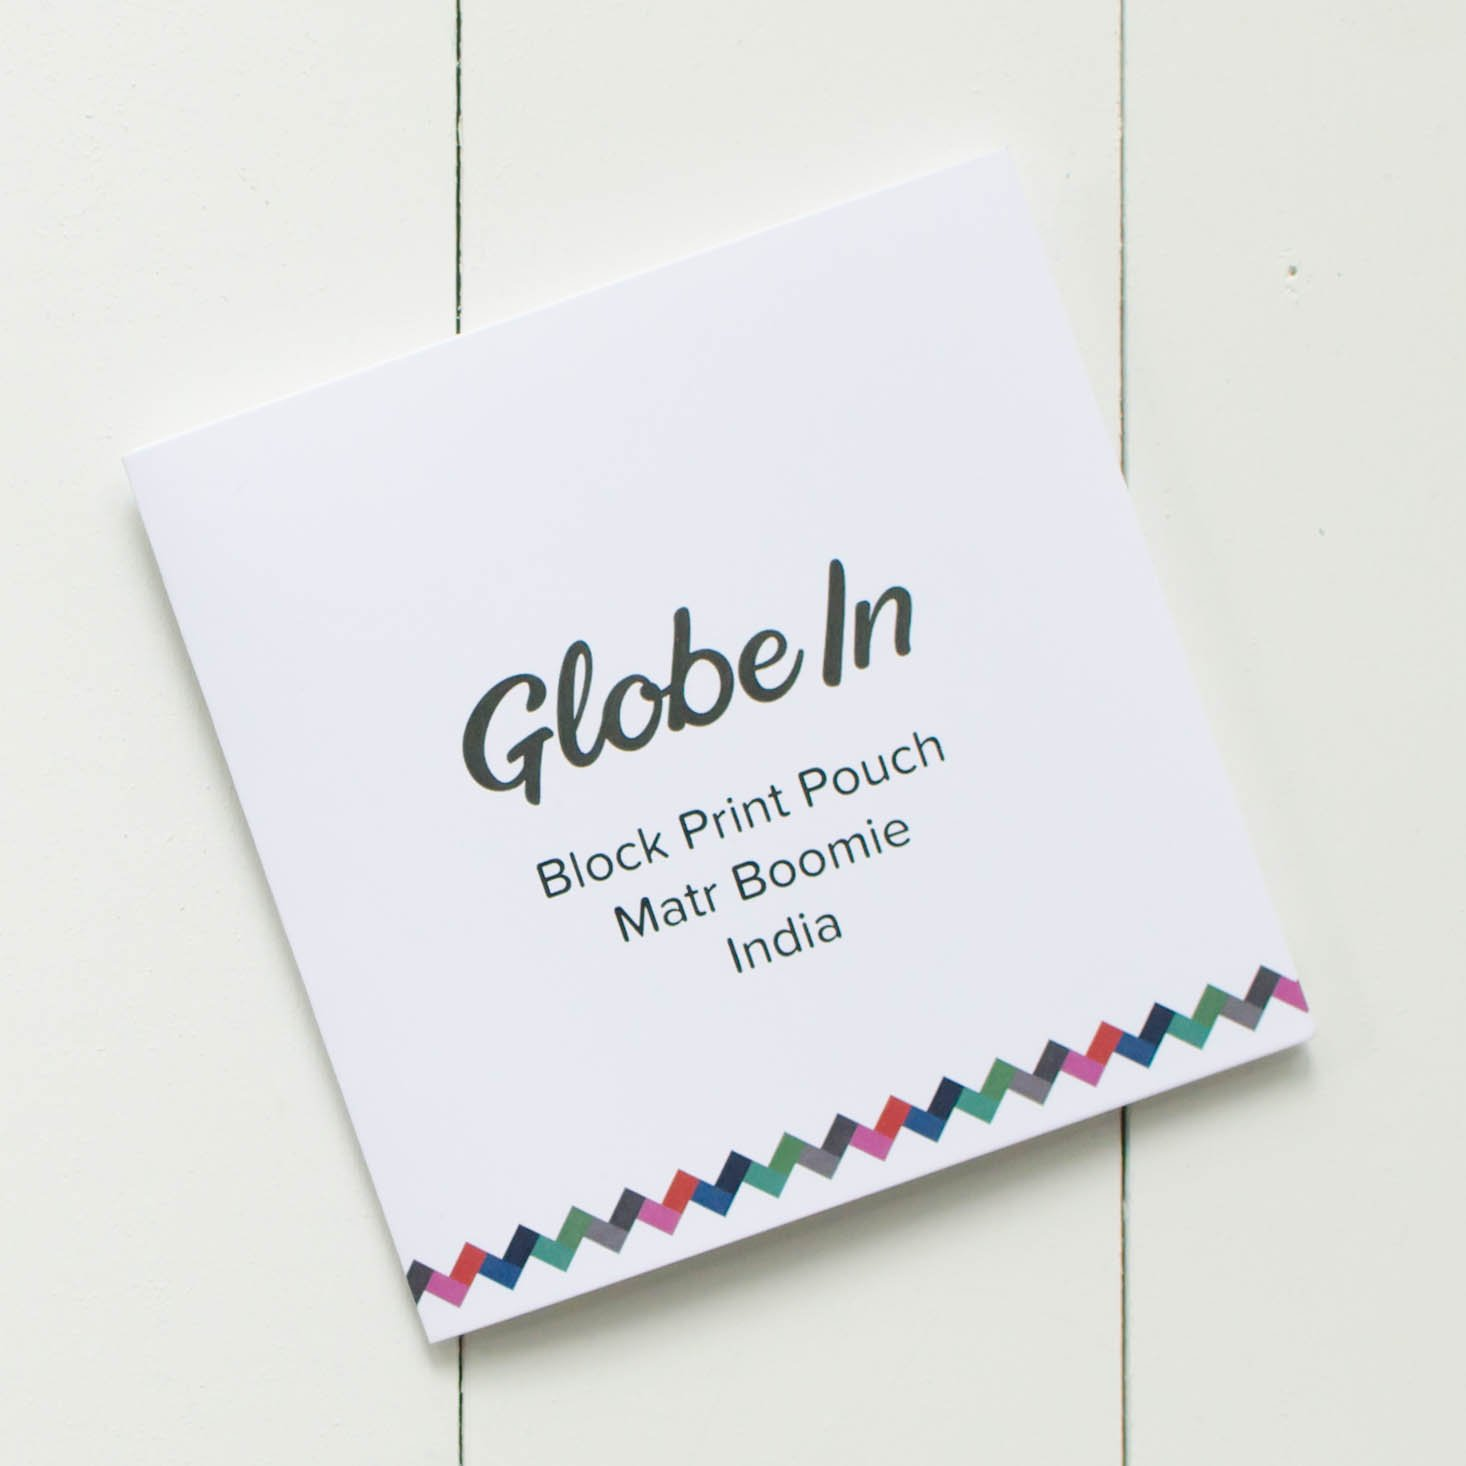 globe-in-benefit-basket-september-2016-012